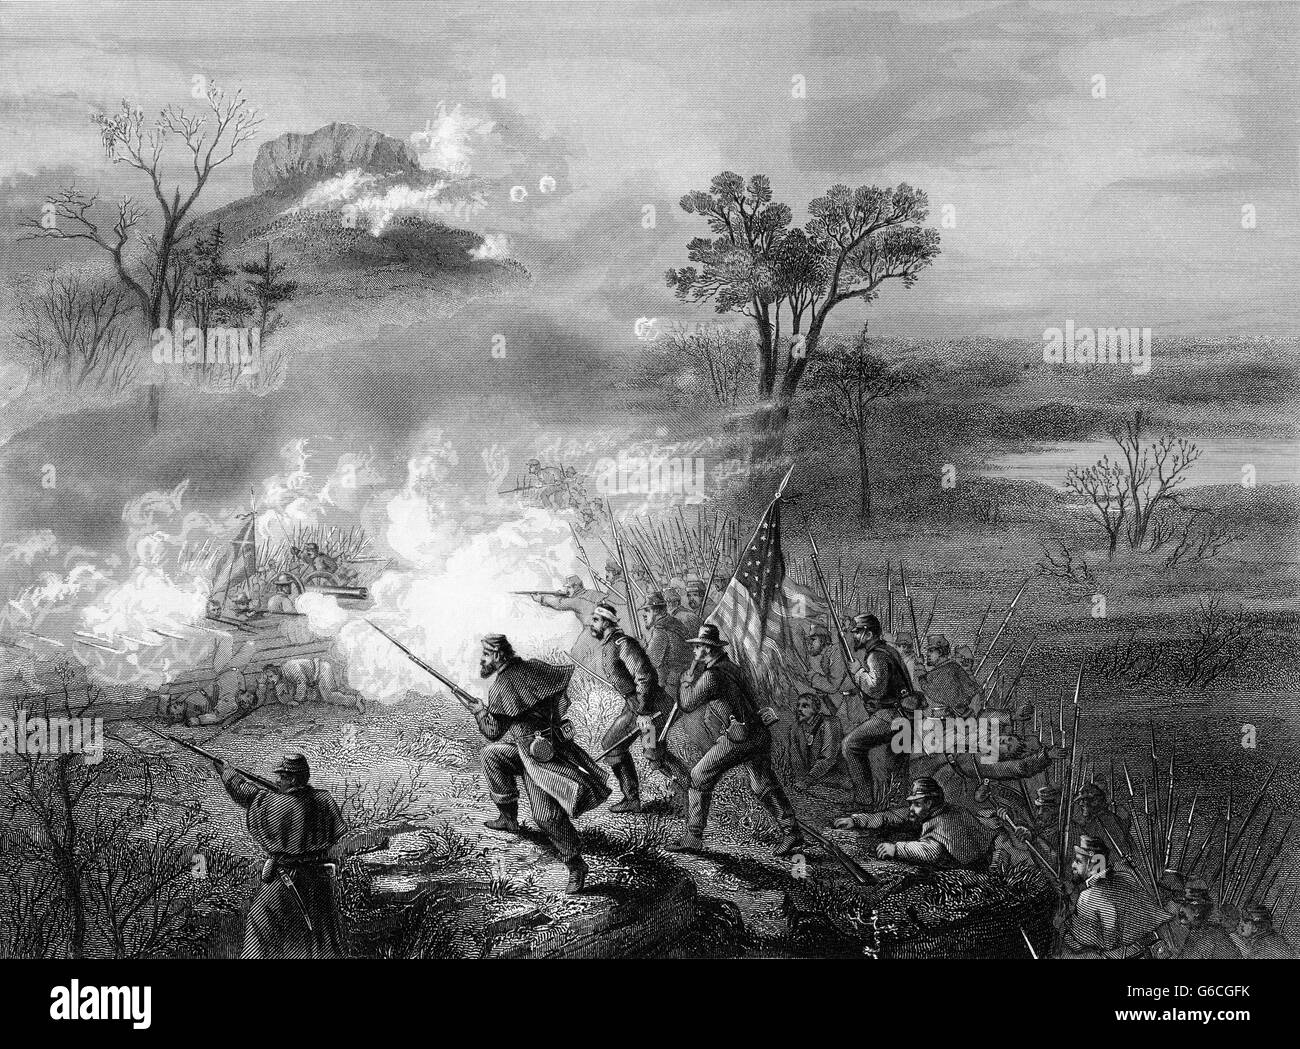 1860s NOVEMBER 1863 DURING THE CHATTANOOGA CAMPAIGN AMERICAN CIVIL WAR BATTLE OF LOOKOUT MOUNTAIN GEORGIA USA - Stock Image